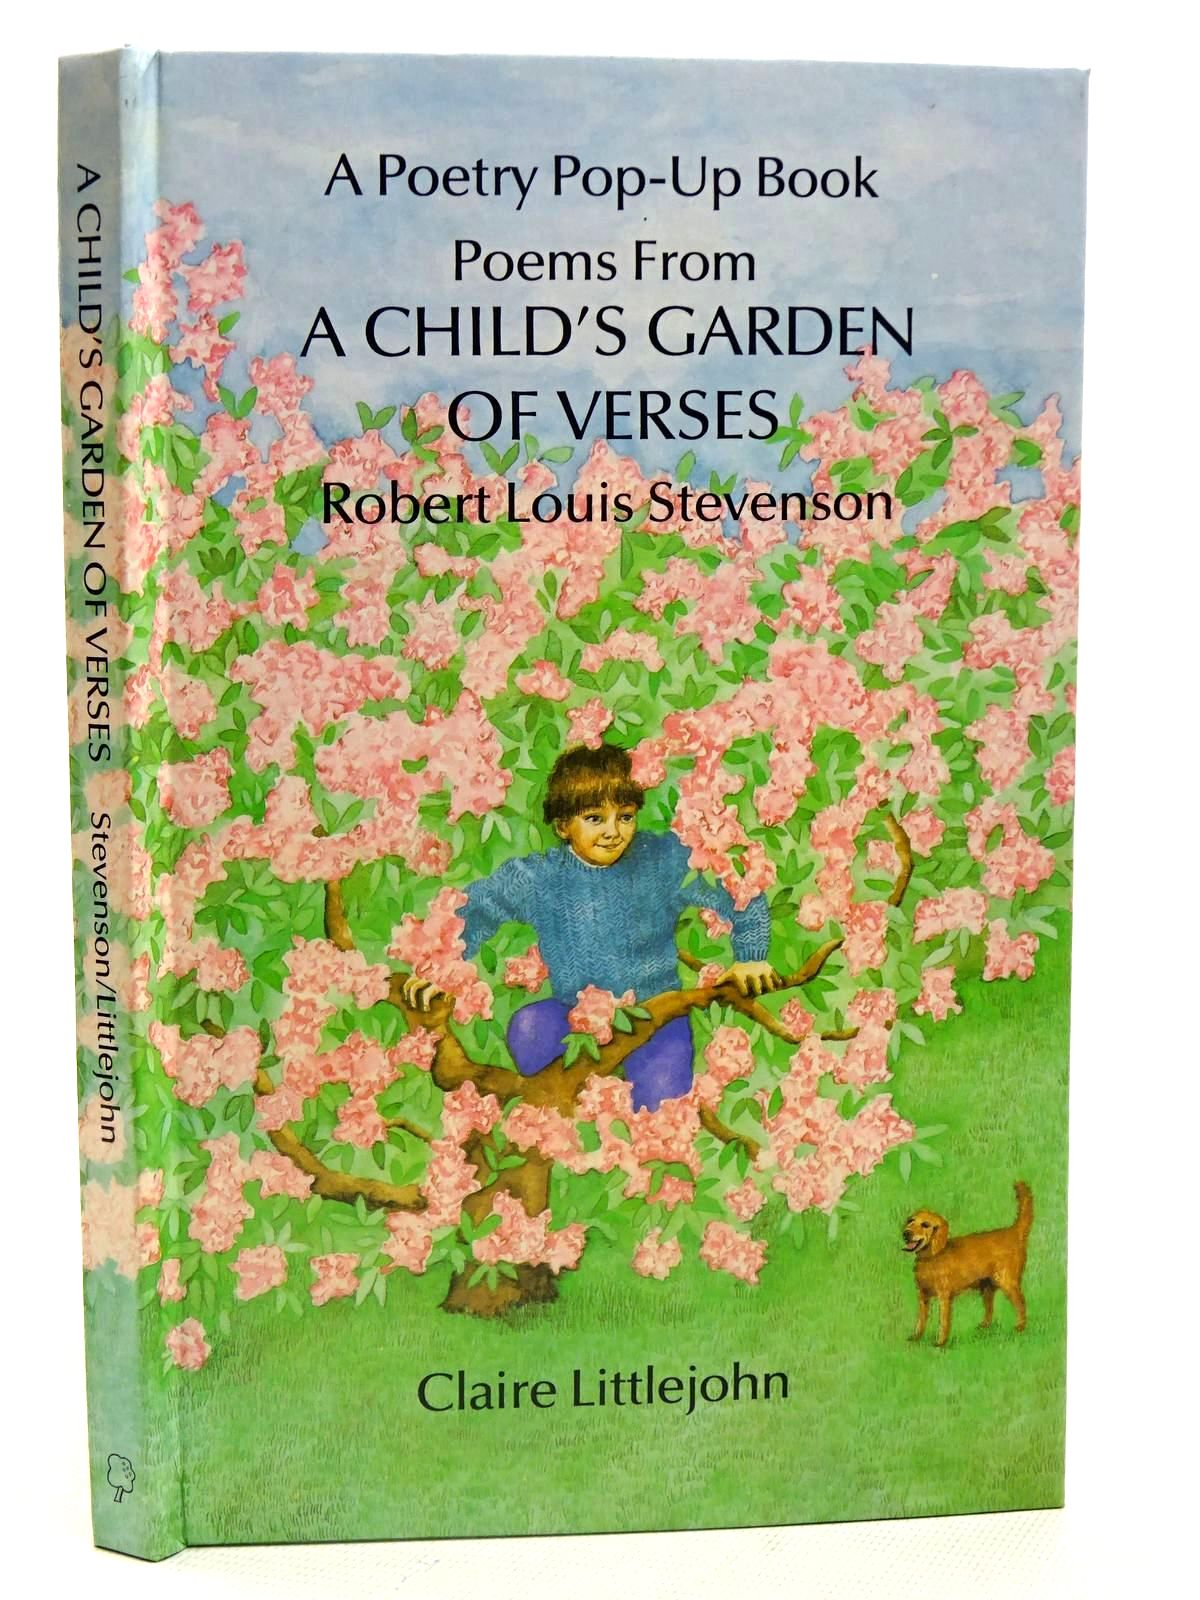 Photo of POEMS FROM A CHILD'S GARDEN OF VERSES written by Stevenson, Robert Louis illustrated by Littlejohn, Claire published by Orchard Books (STOCK CODE: 2126606)  for sale by Stella & Rose's Books